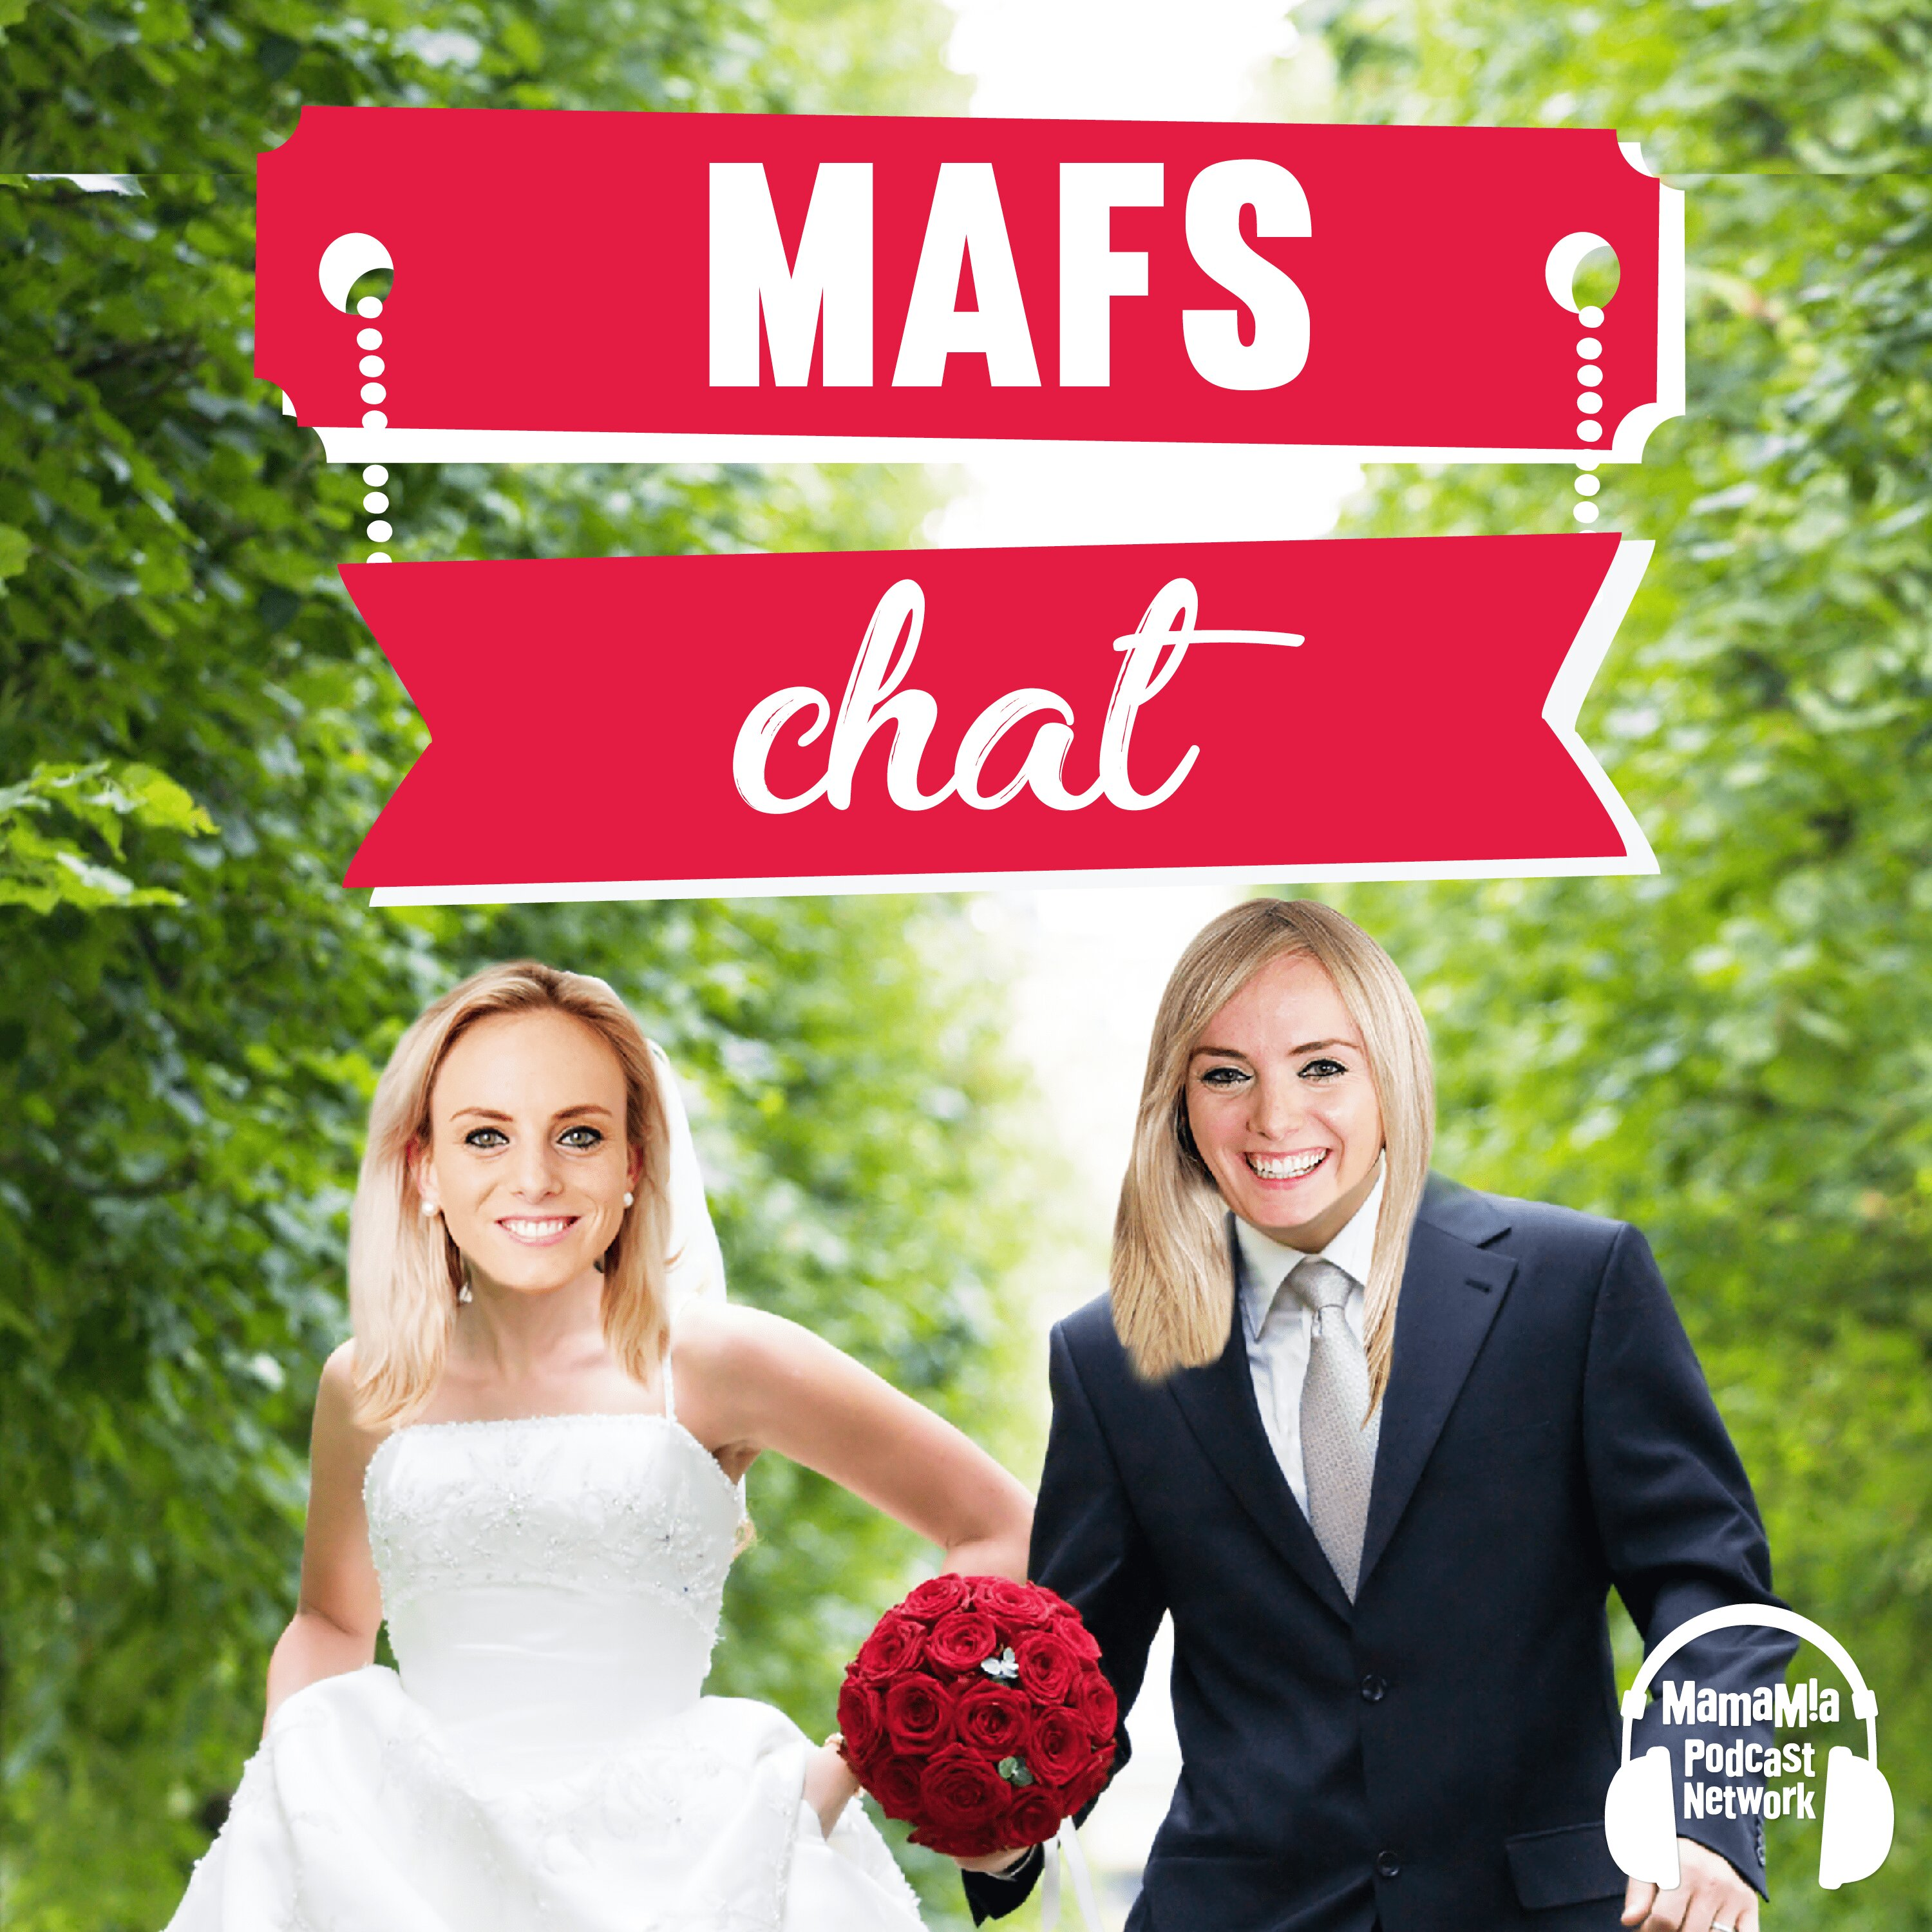 MAFS Chat : We Need To Talk About Cyrell